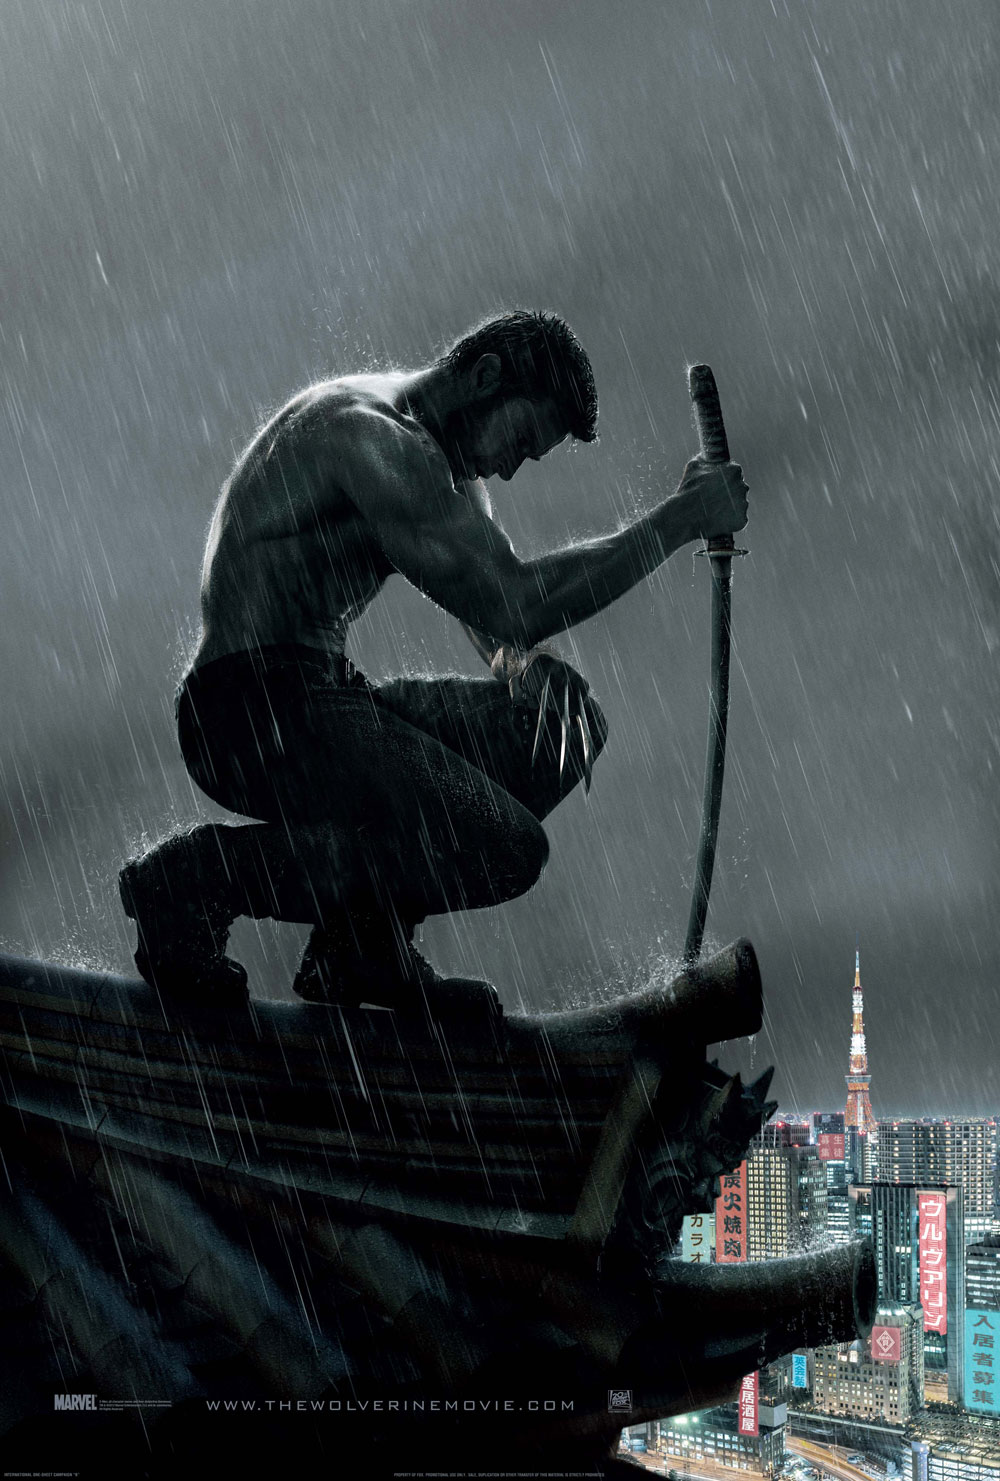 Motion poster. Cartel Te Wolverine HD